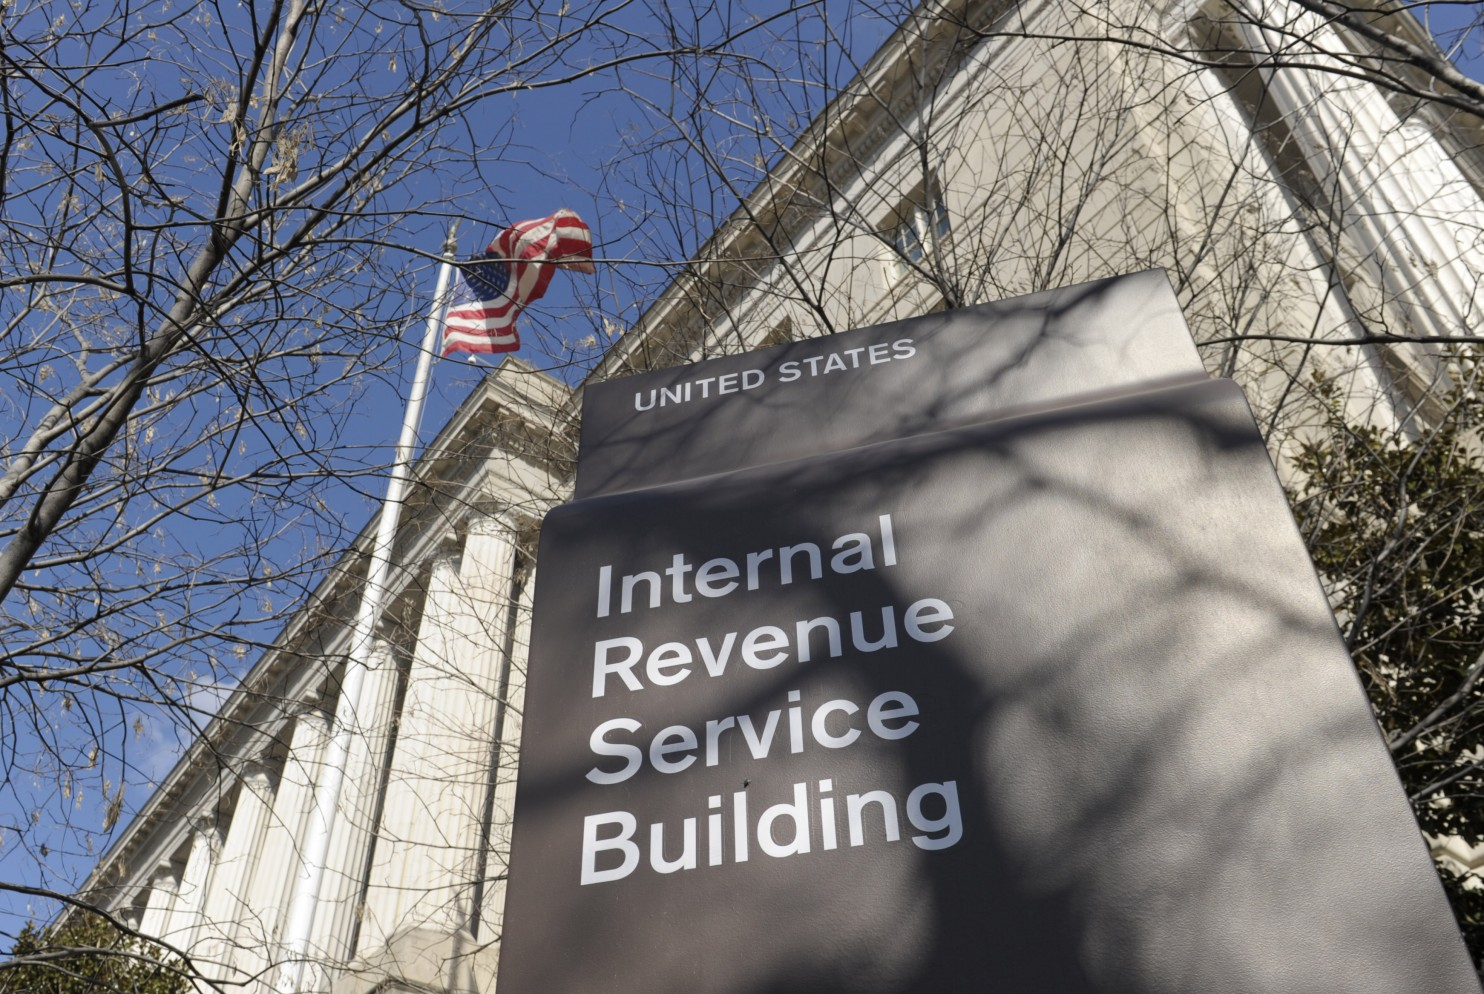 Freelancer's guide to taxes IRS building exterior with signage